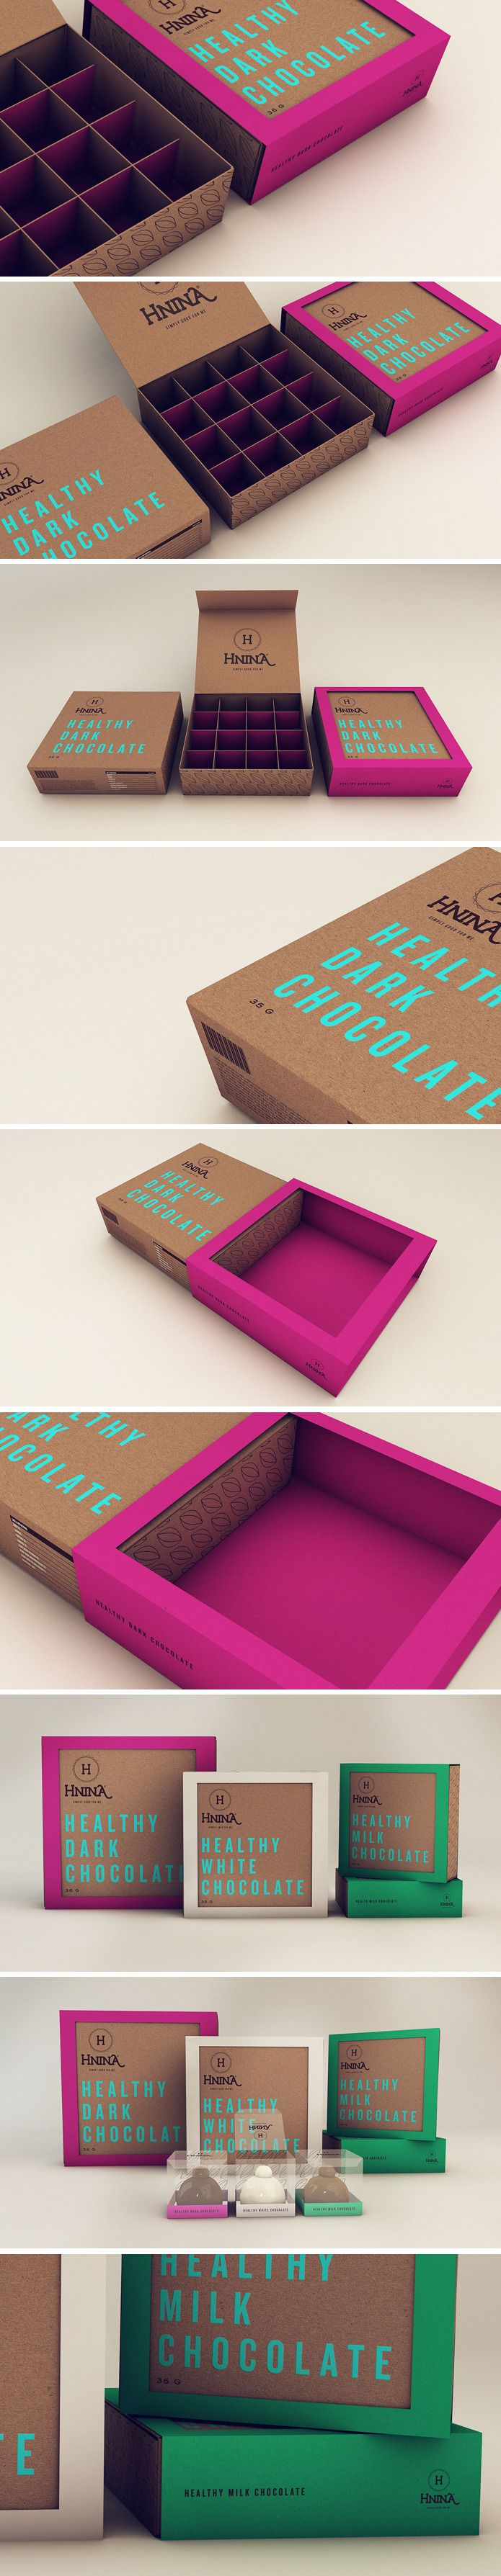 Hnina by Isabela Rodrigues, i like the idea for sending off a book to a publisher in this box